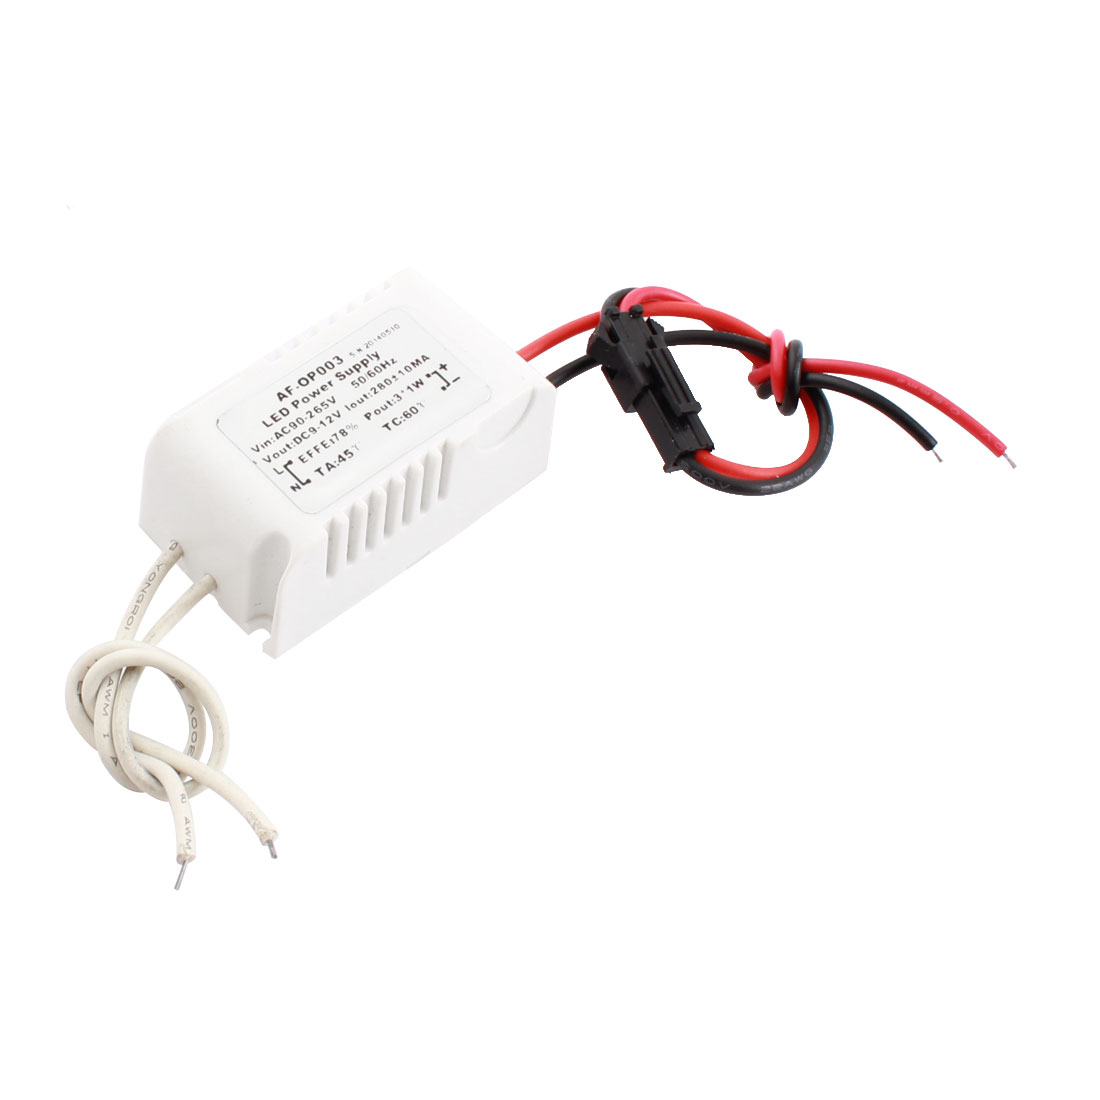 AC 90-265V Input DC 9-12V Output White Power Supply Driver for 3x1W LED Light